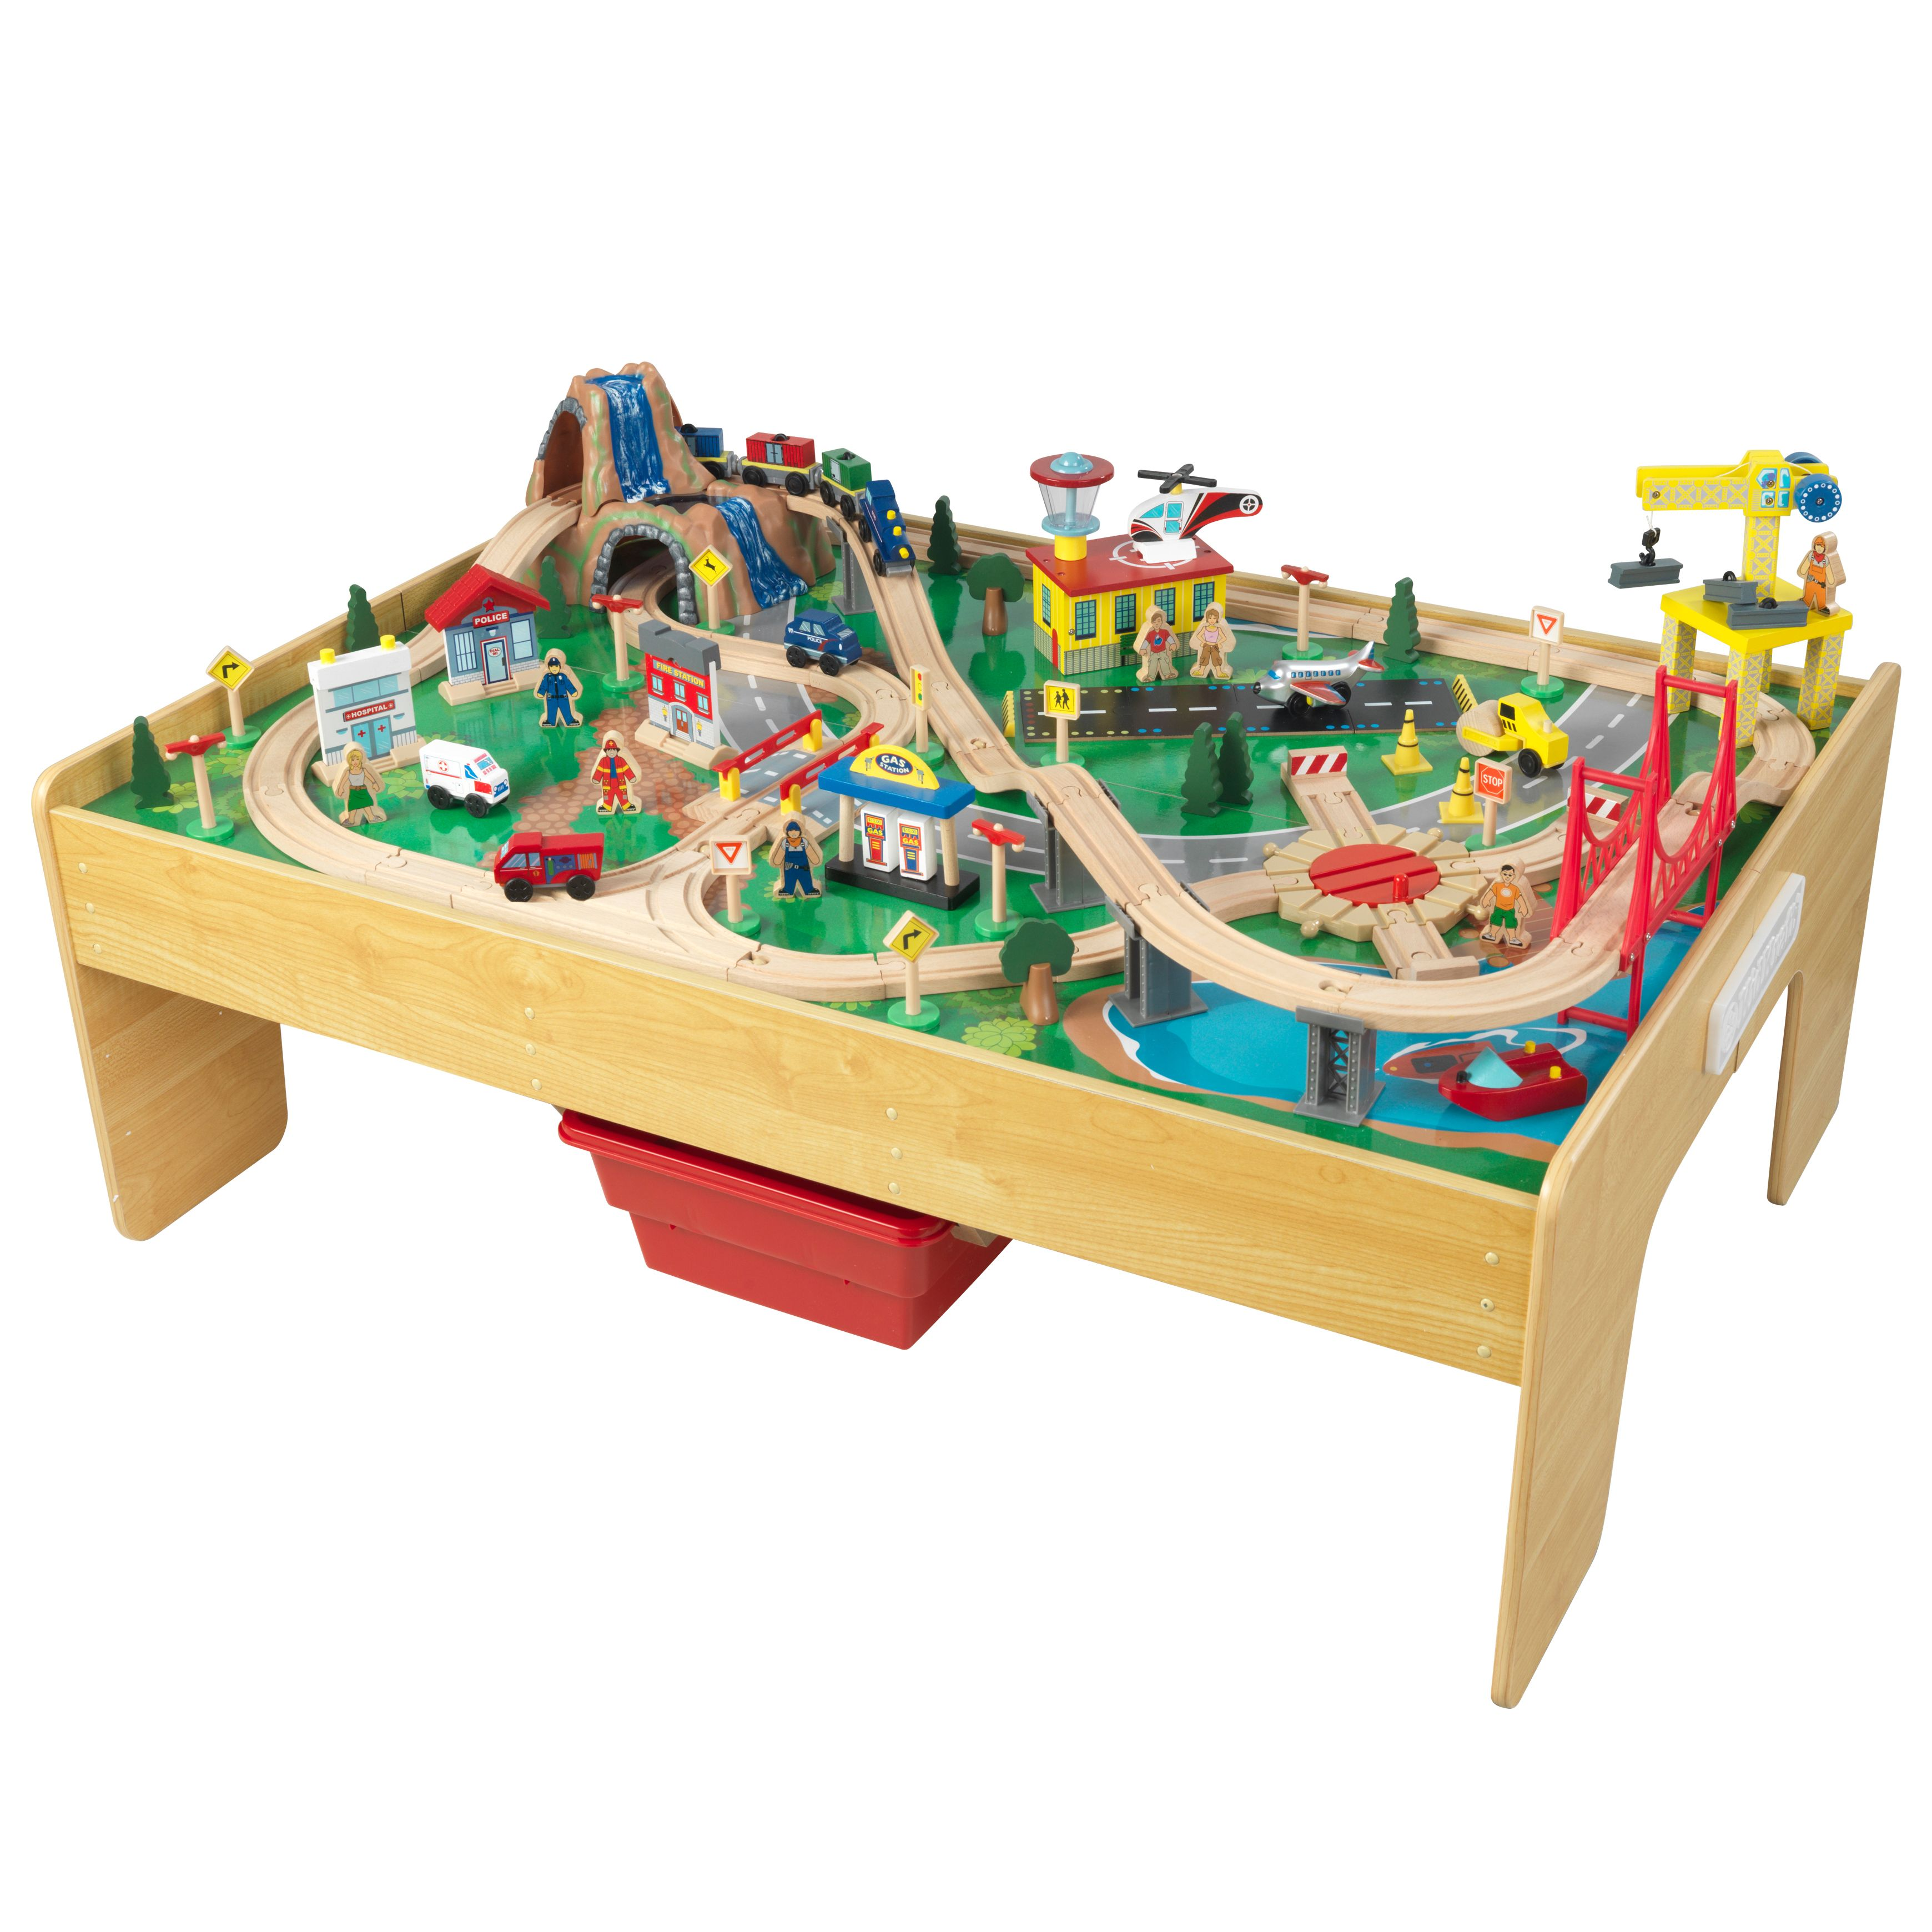 Kidkraft Adventure Town Railway Wooden Train Set Table With Ez Kraft Assembly With 120 Accessories Included Walmart Com Wooden Train Set Table Train Set Table Wooden Train Set